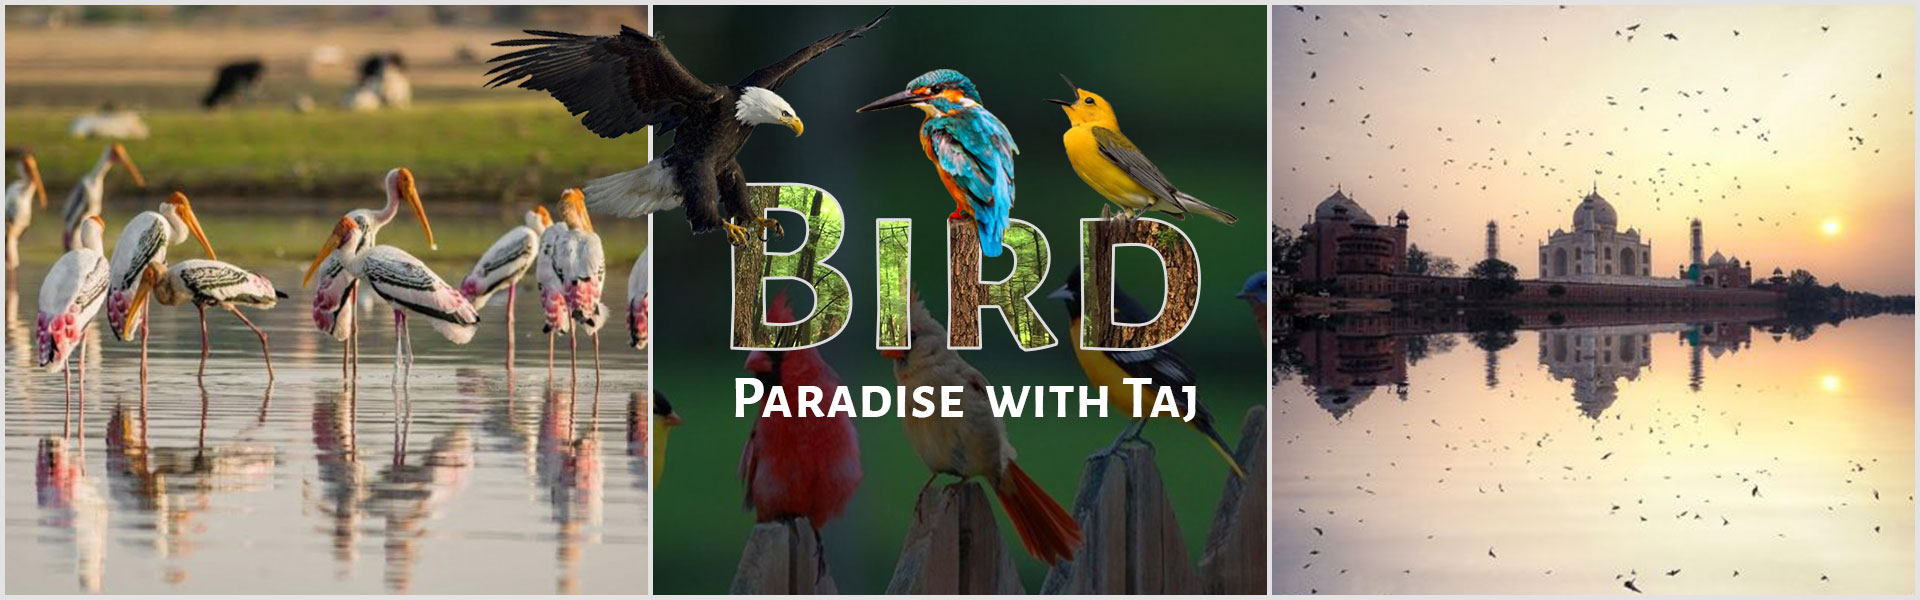 Bird Paradise with Taj